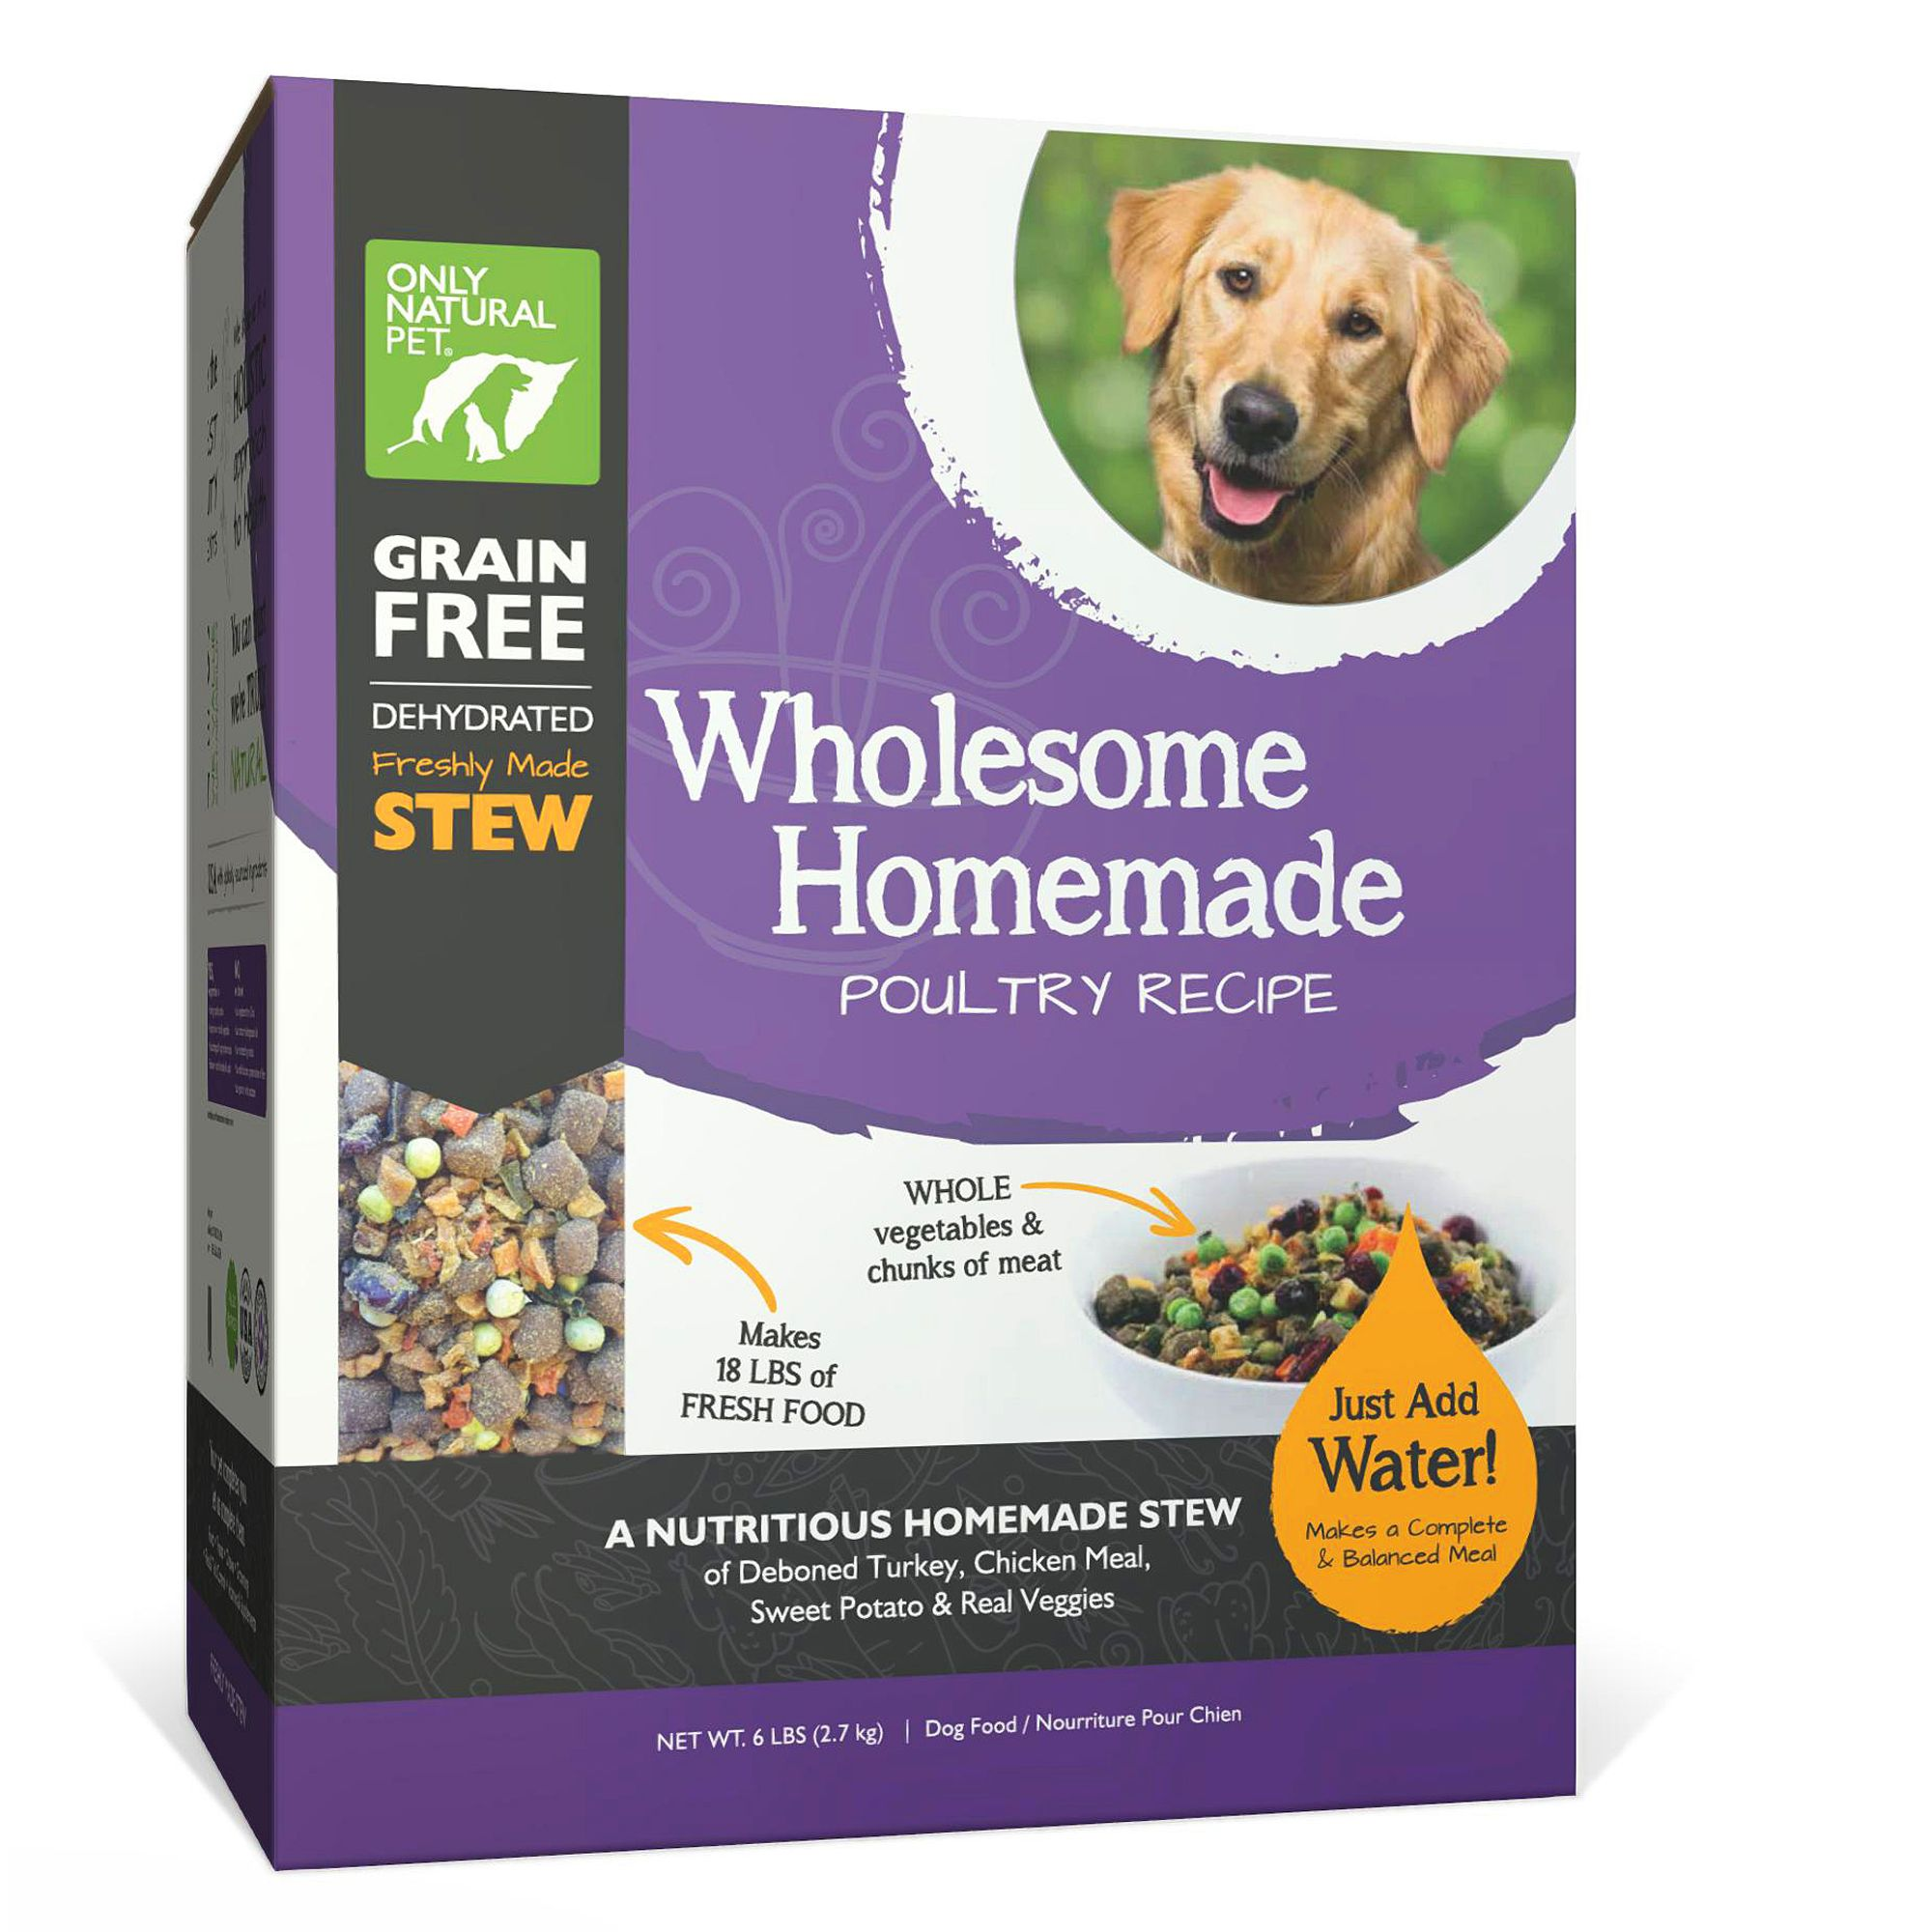 Only Natural Pet Wholesome Homemade Dog Food - Grain Free, Dehydrated, Poultry size: 6 Lb, Turkey, Chicken, Stew 5259862